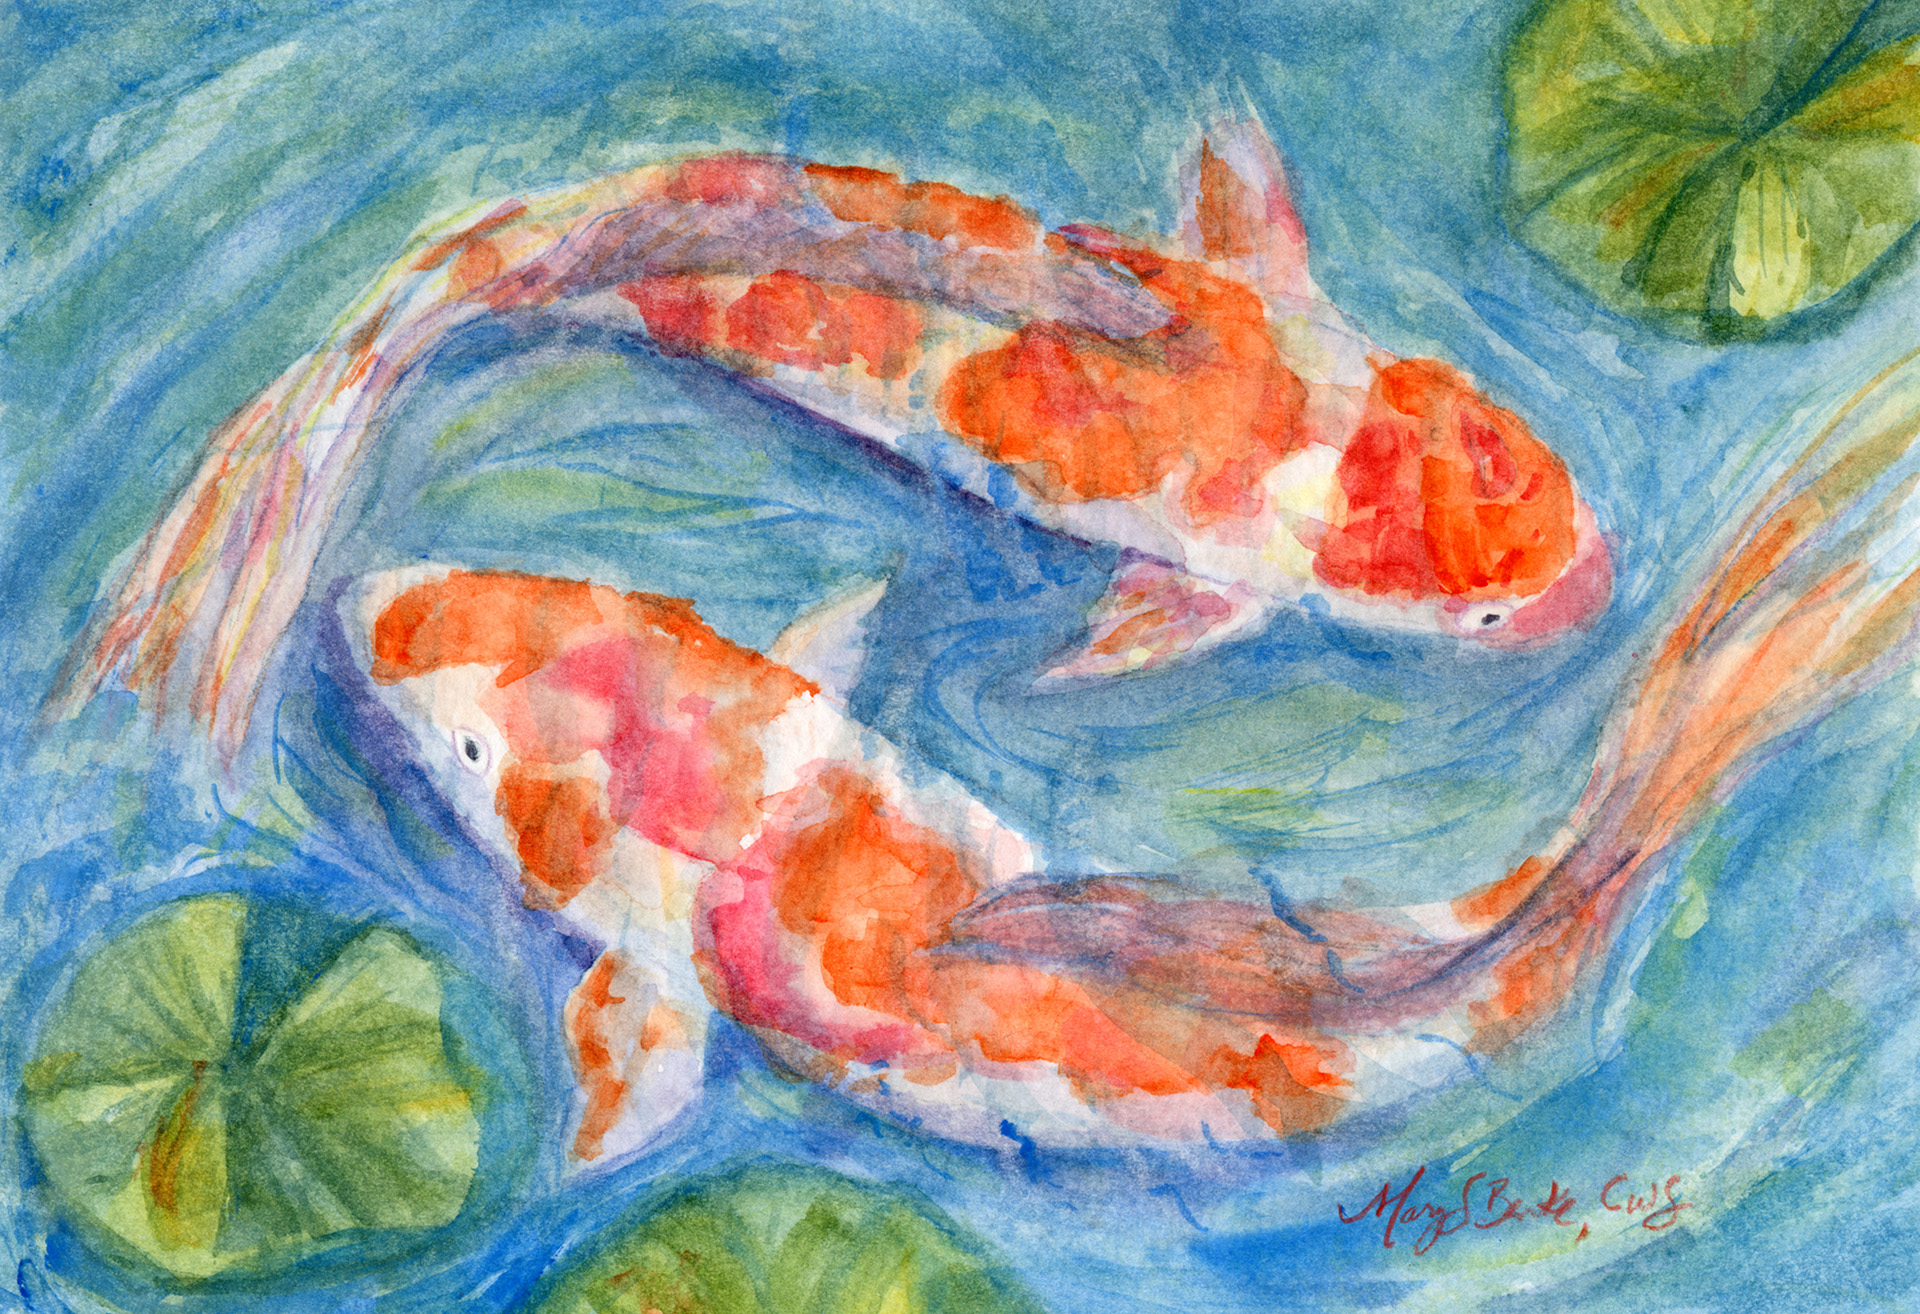 A peaceful watercolor painting of two koi fish swimming in circles by Mary Benke